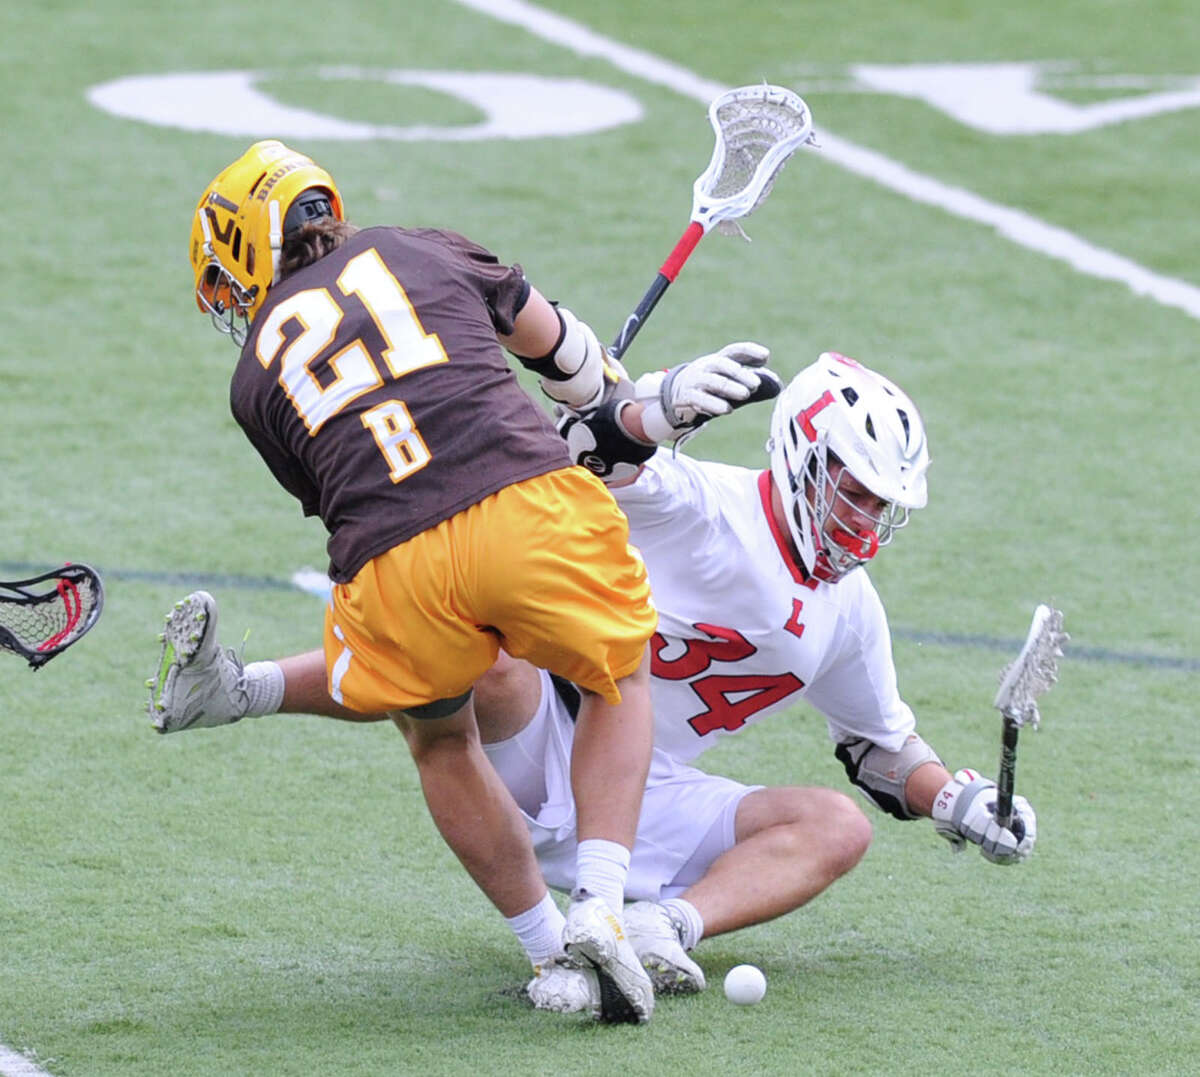 At left, John Fox (#21) of Brunswick takes down Lawrenceville's Charles Burditt (#34) with a check making Burditt lose the ball during the boys high school lacrosse match between Brunswick School and Lawrenceville School at Brunswick in Greenwich, Conn., Wednesday, April 22, 2015. Brunswick won the match, 18-8.